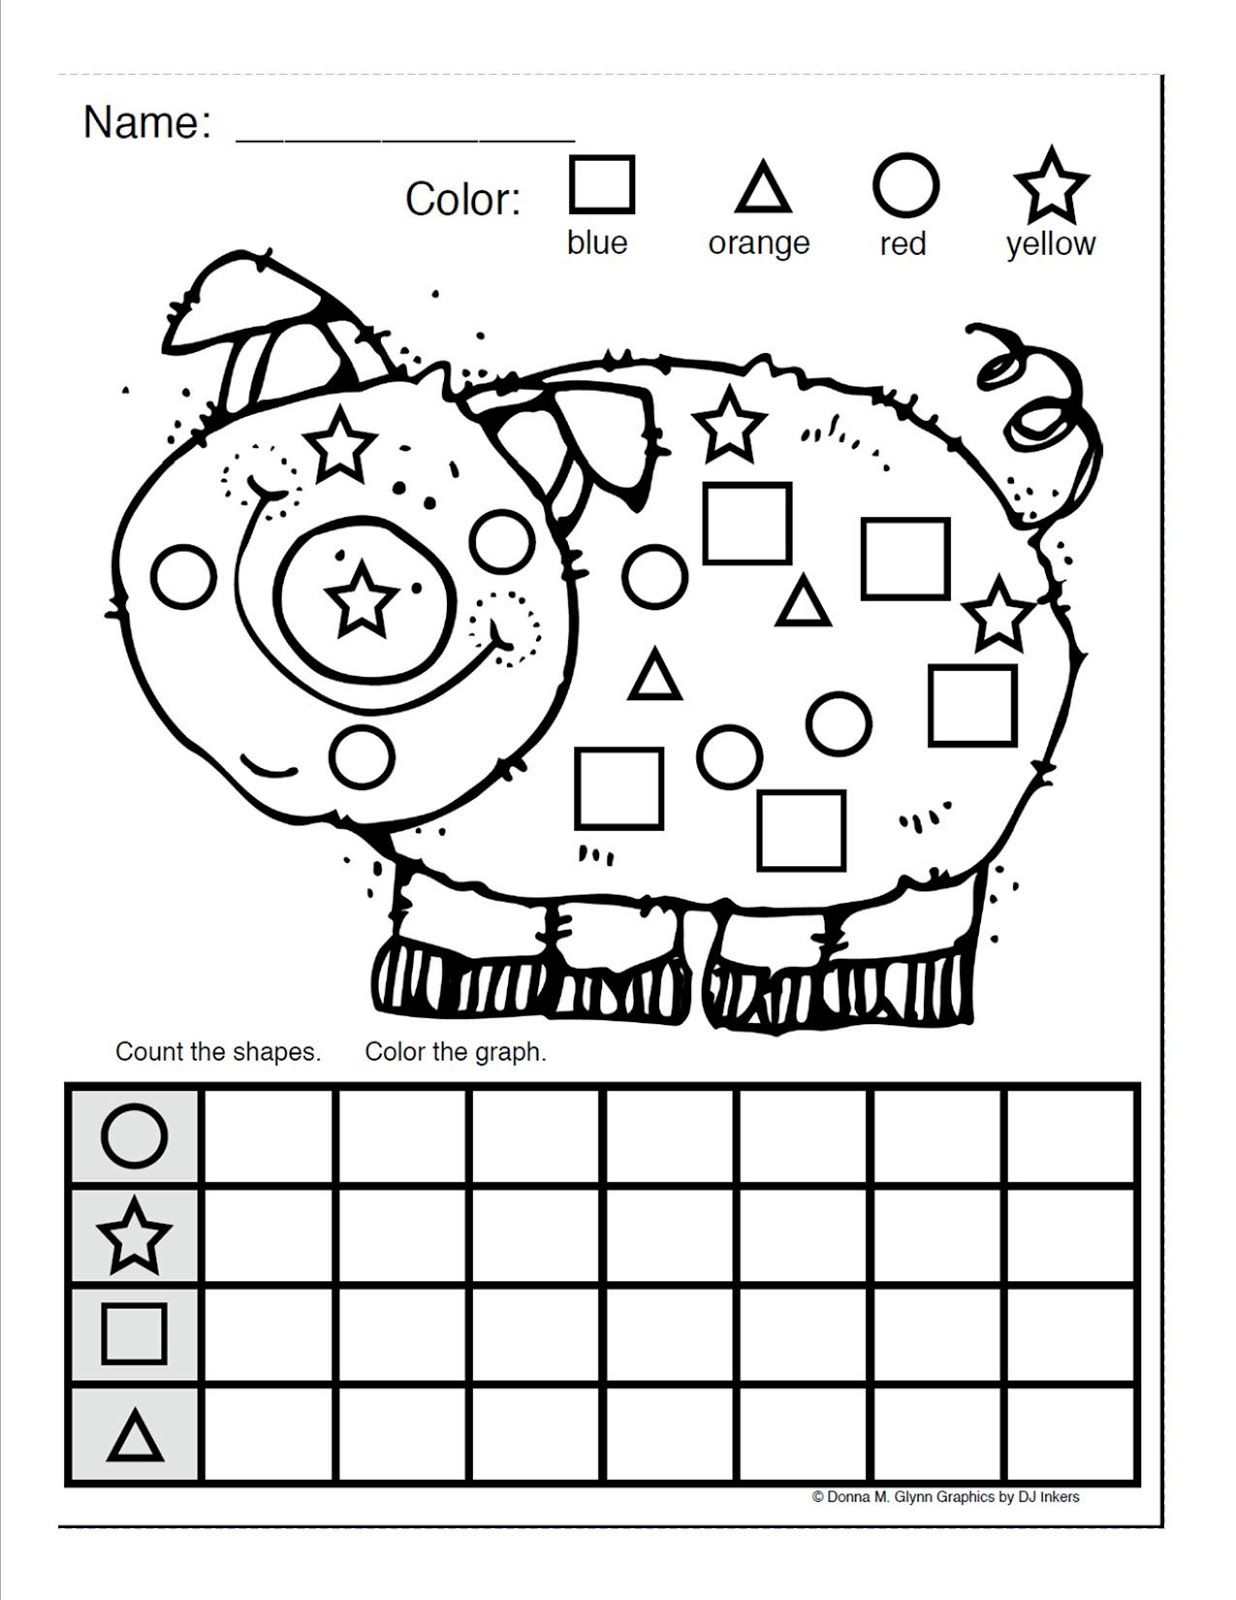 Coloring shapes worksheet - Color And Count The Shapes Google Search